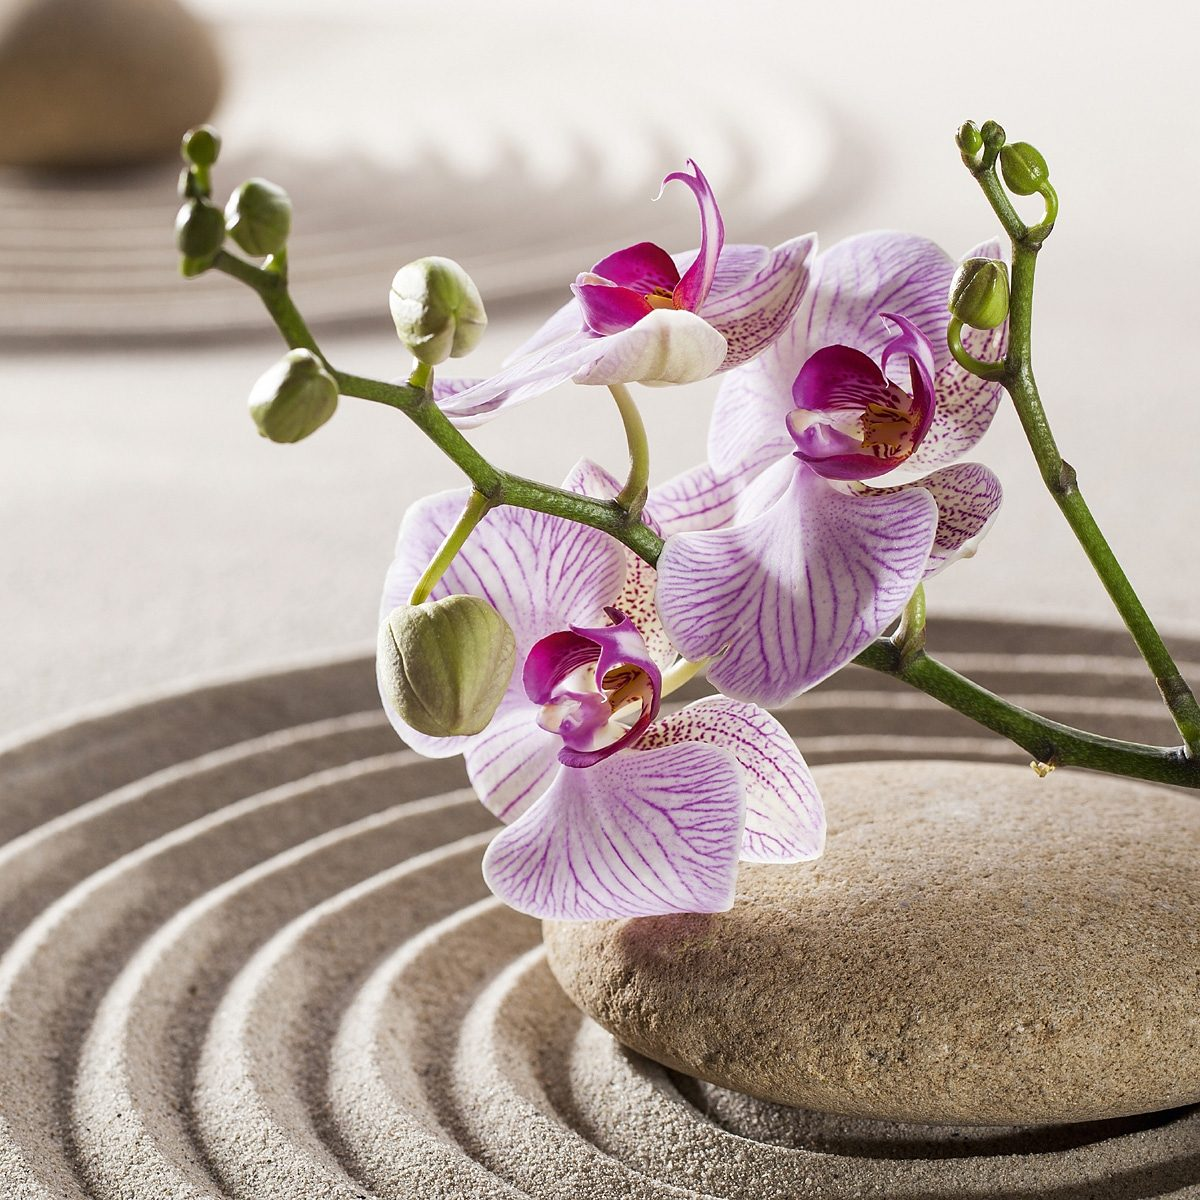 EUROGRAPHICS Glasbild »Orchids In The Sky«, 30/30 cm